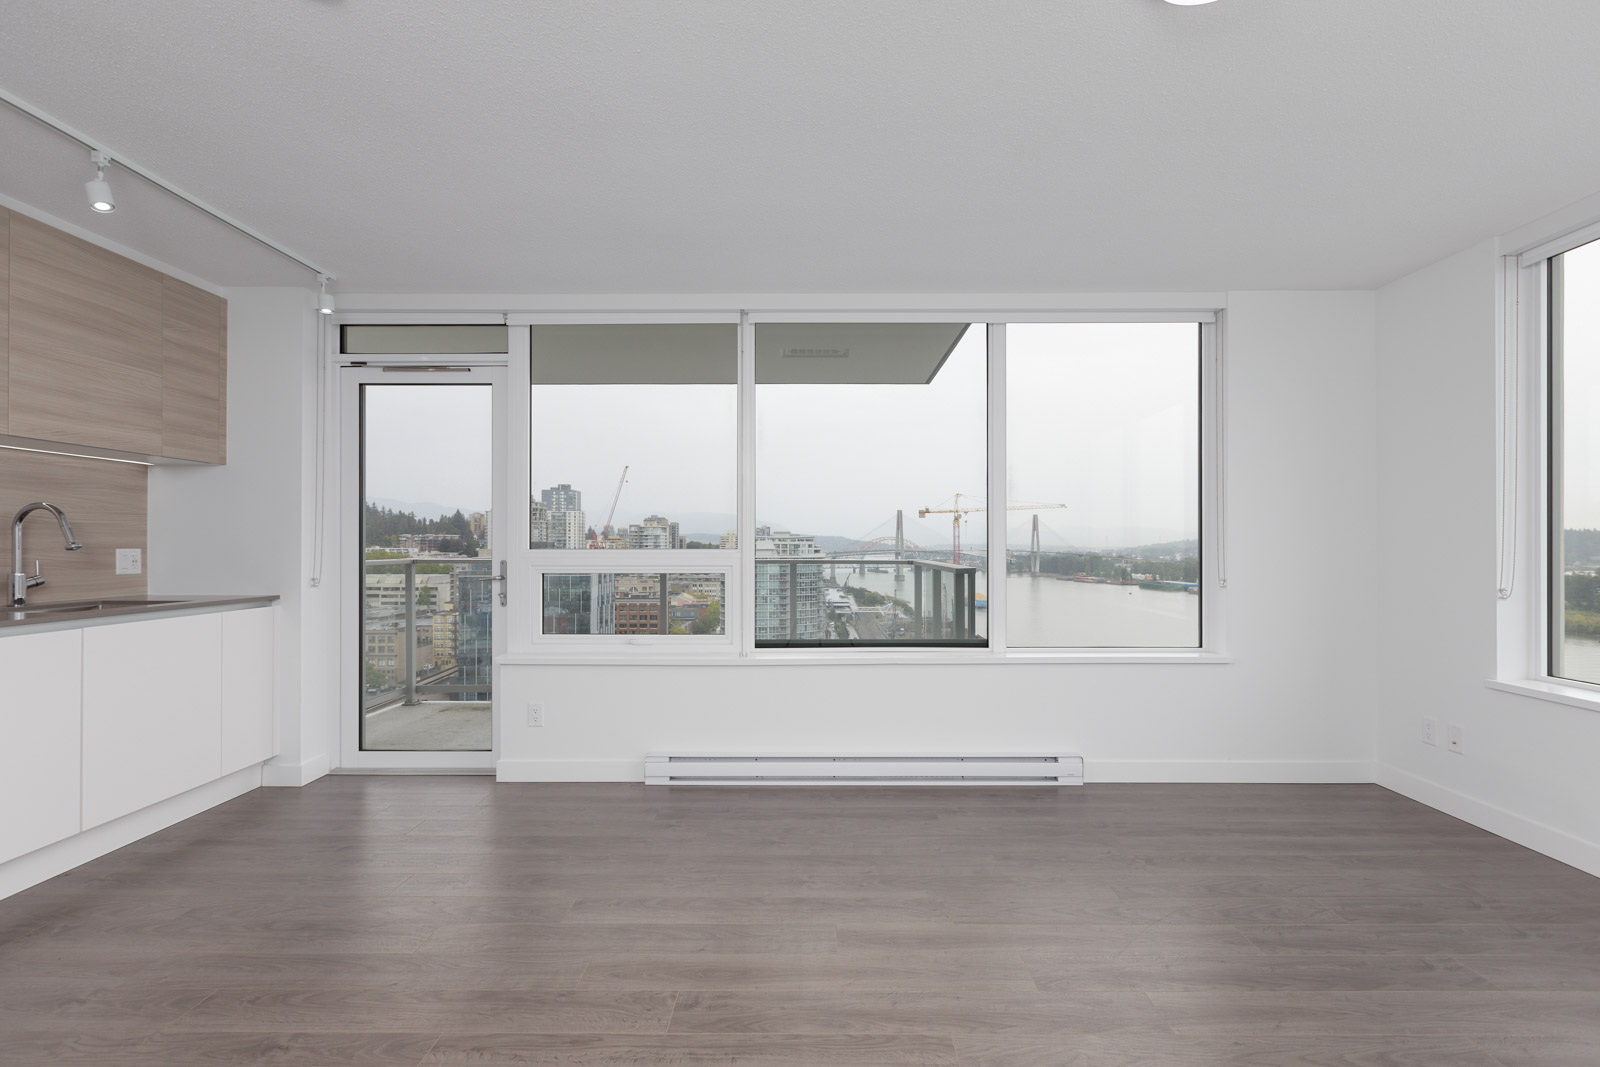 laminate floors and door to the balcony and big windows